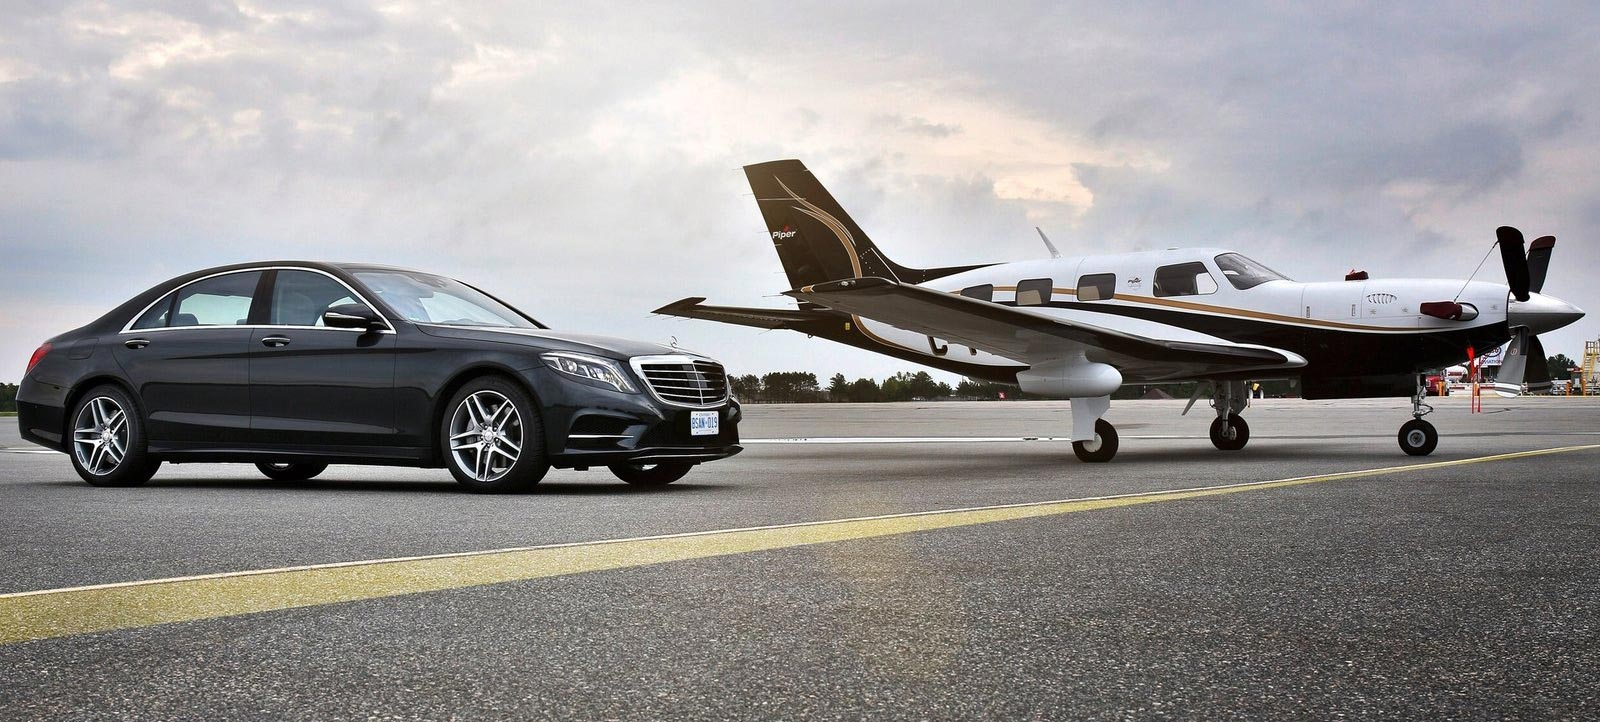 Executive Airport Transfer Service Why Hire It